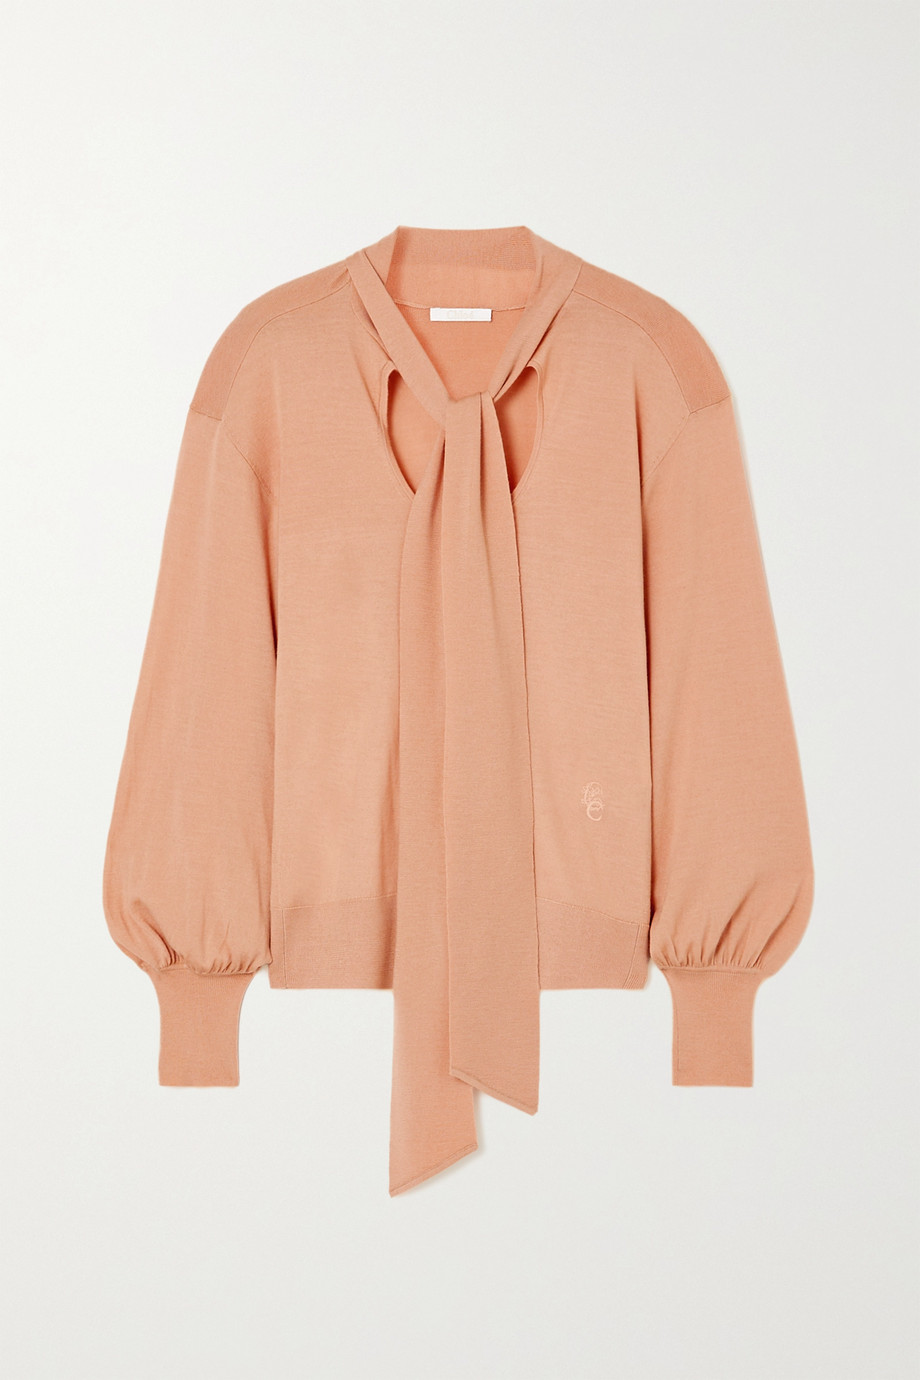 Chloé Tie-detailed wool sweater